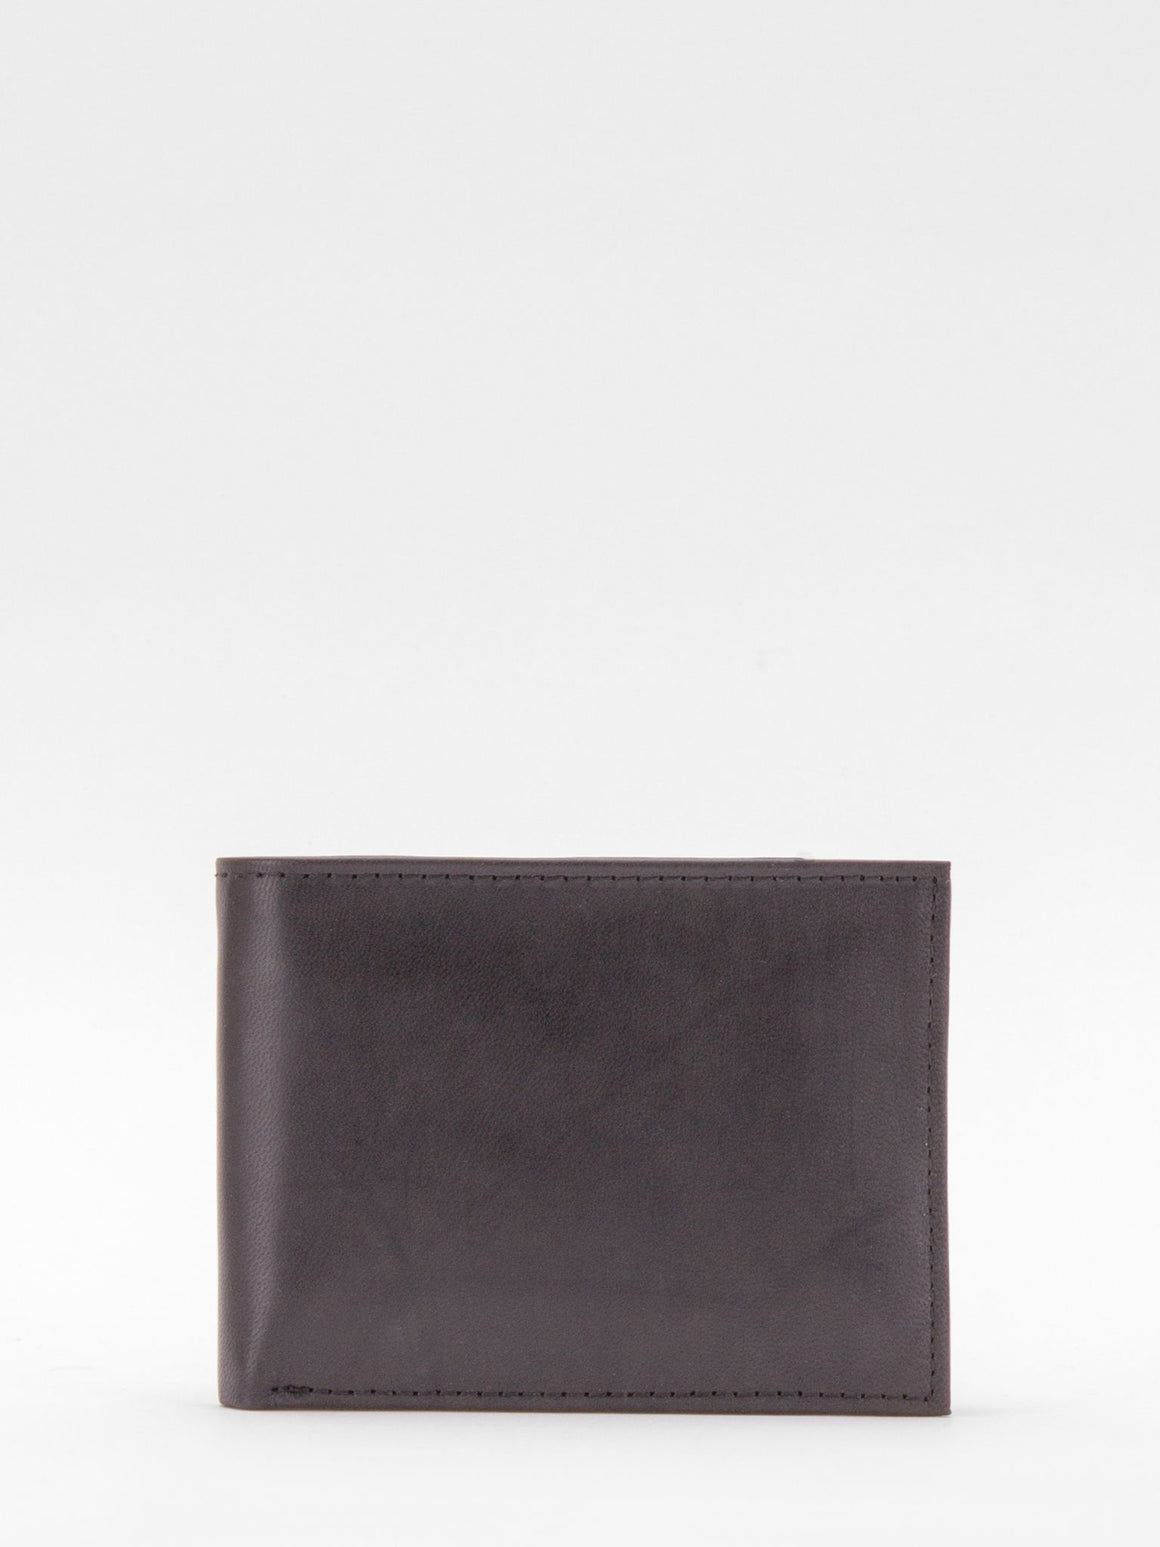 Benjamin ID Passcase Napa Leather Billfold - Black